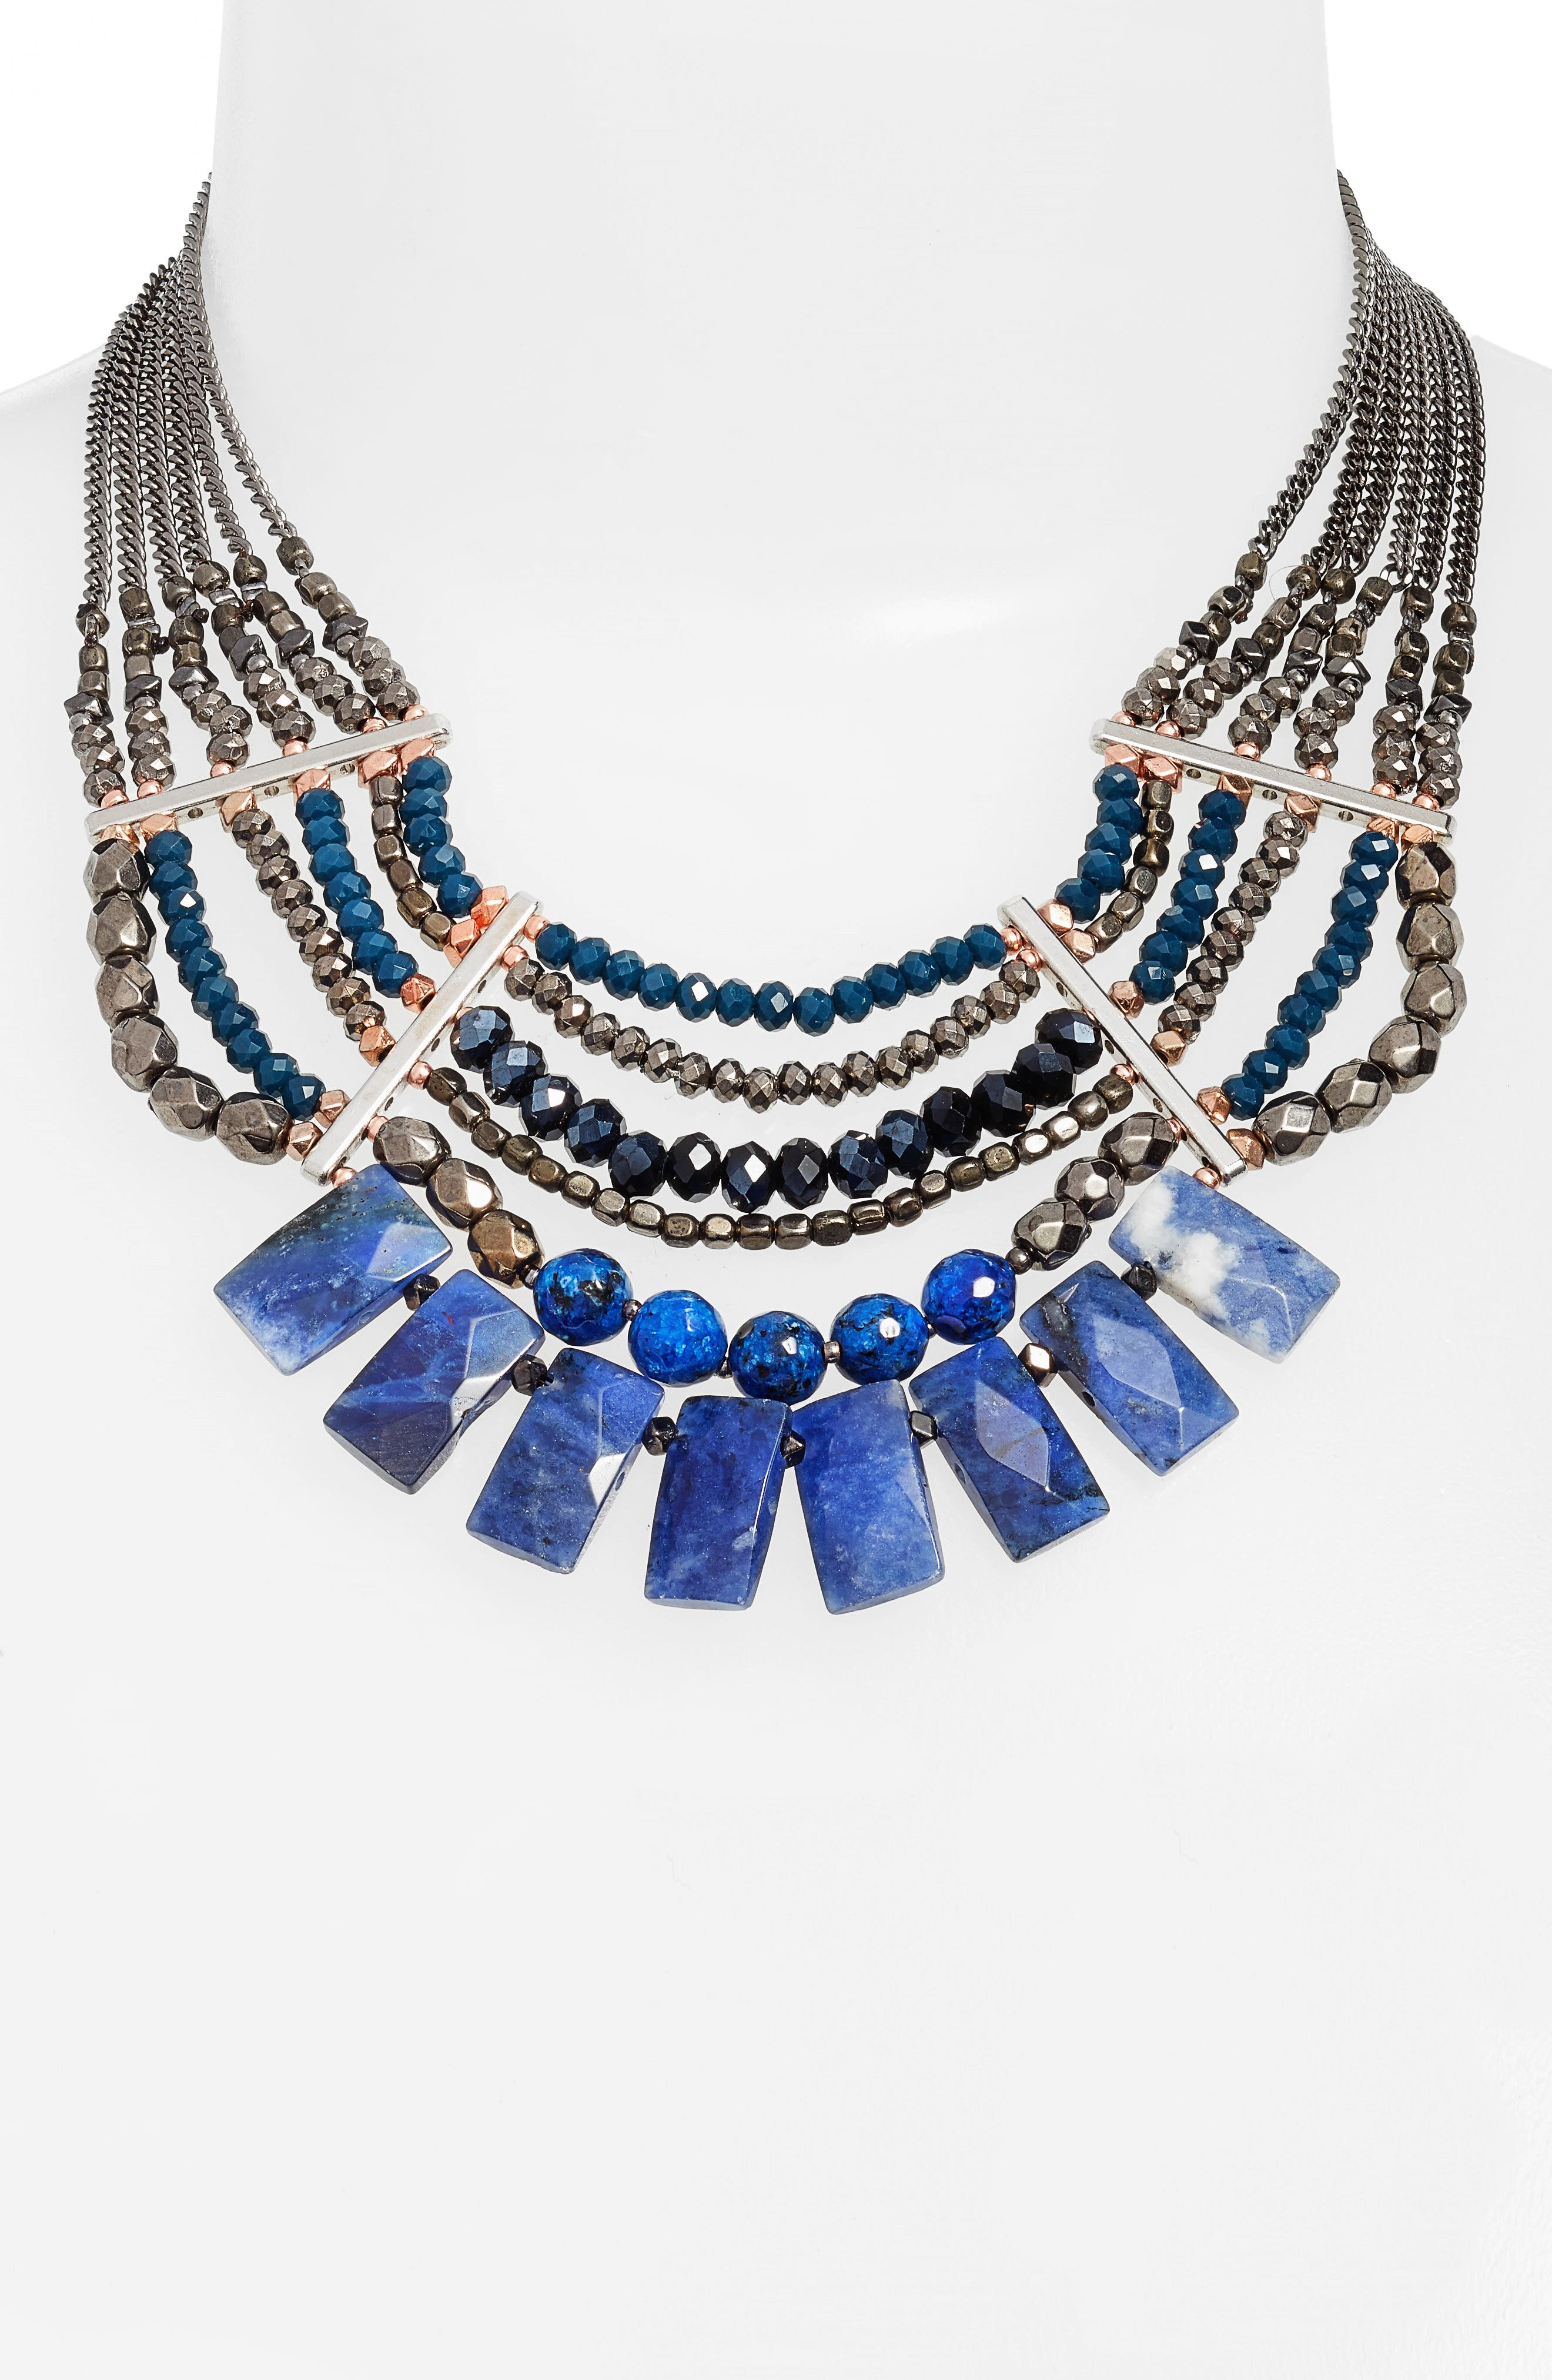 Semiprecious Stone Beaded Fringe Collar Necklace,                             Alternate thumbnail 2, color,